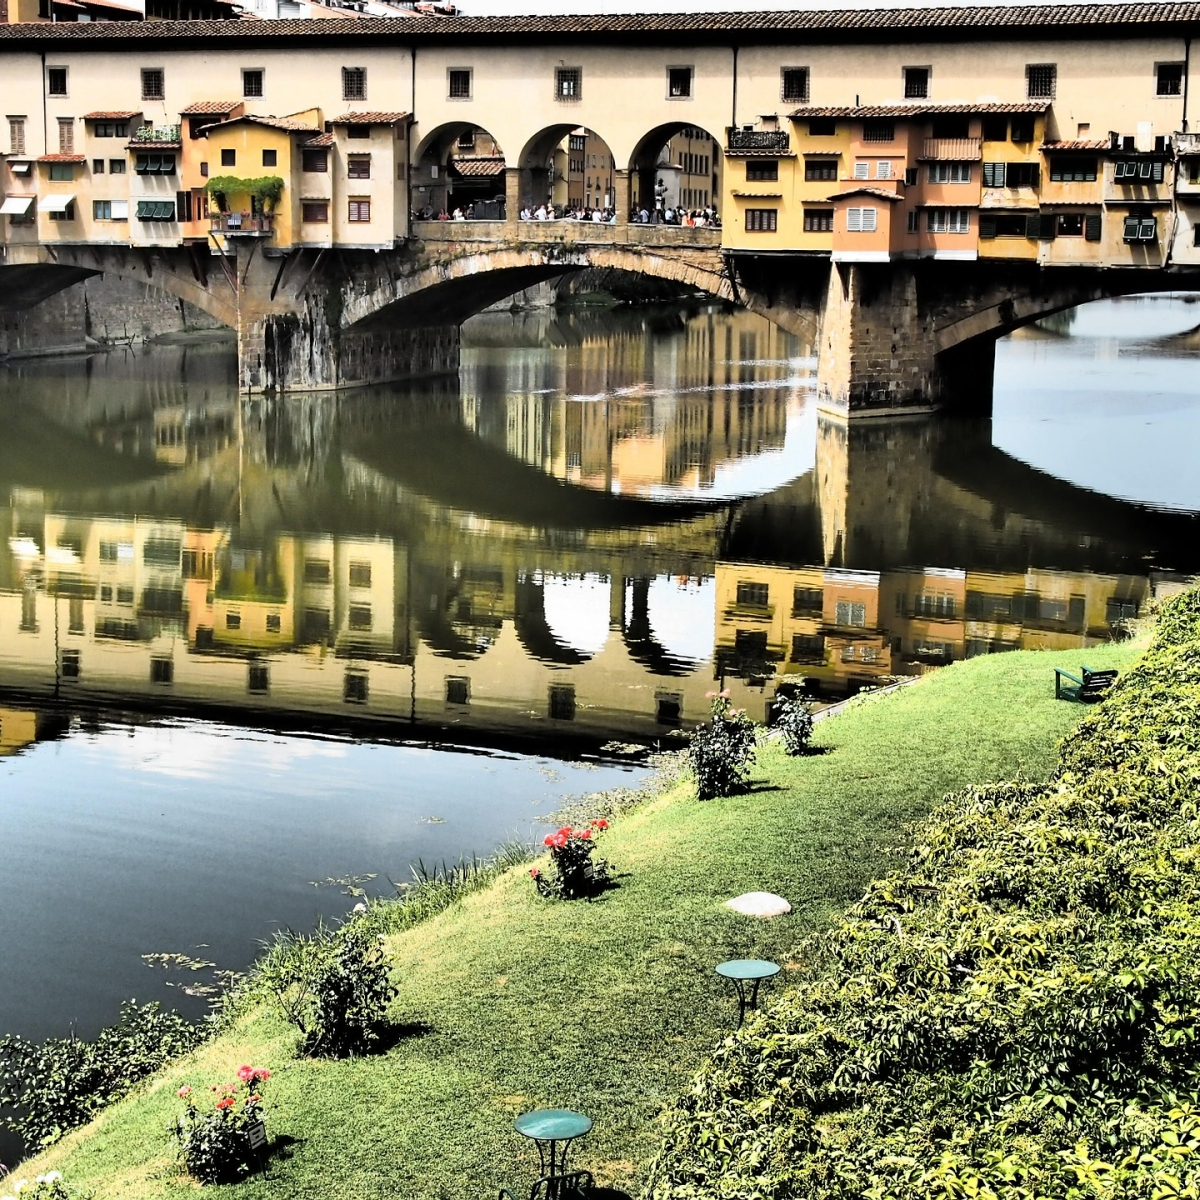 Canals in Florence, Italy